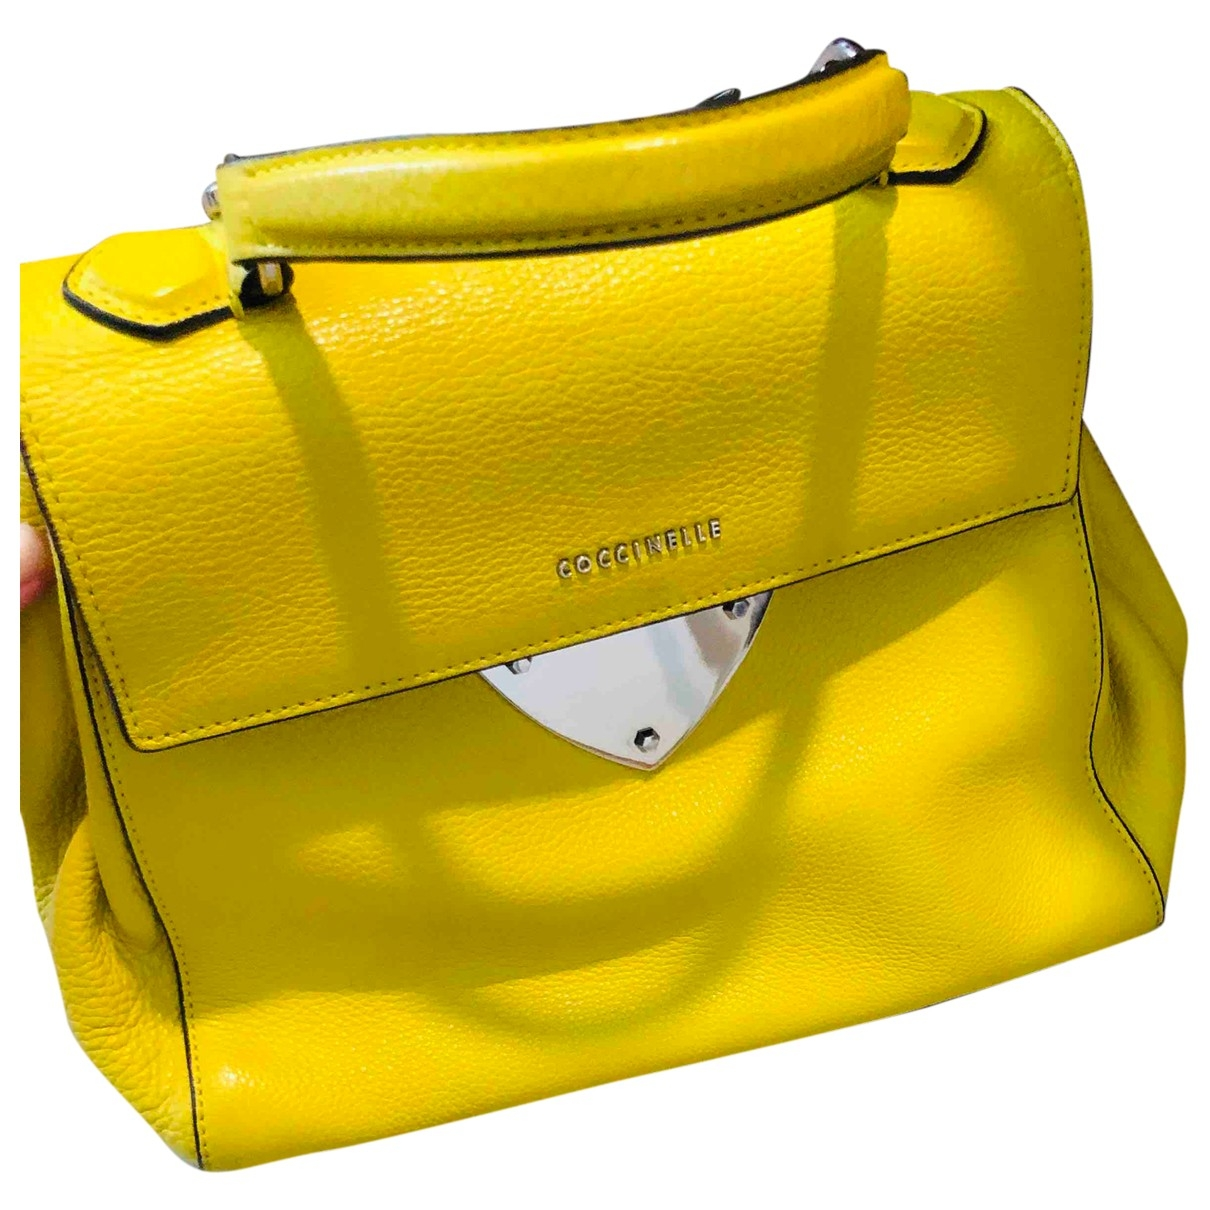 Coccinelle \N Yellow Leather handbag for Women \N